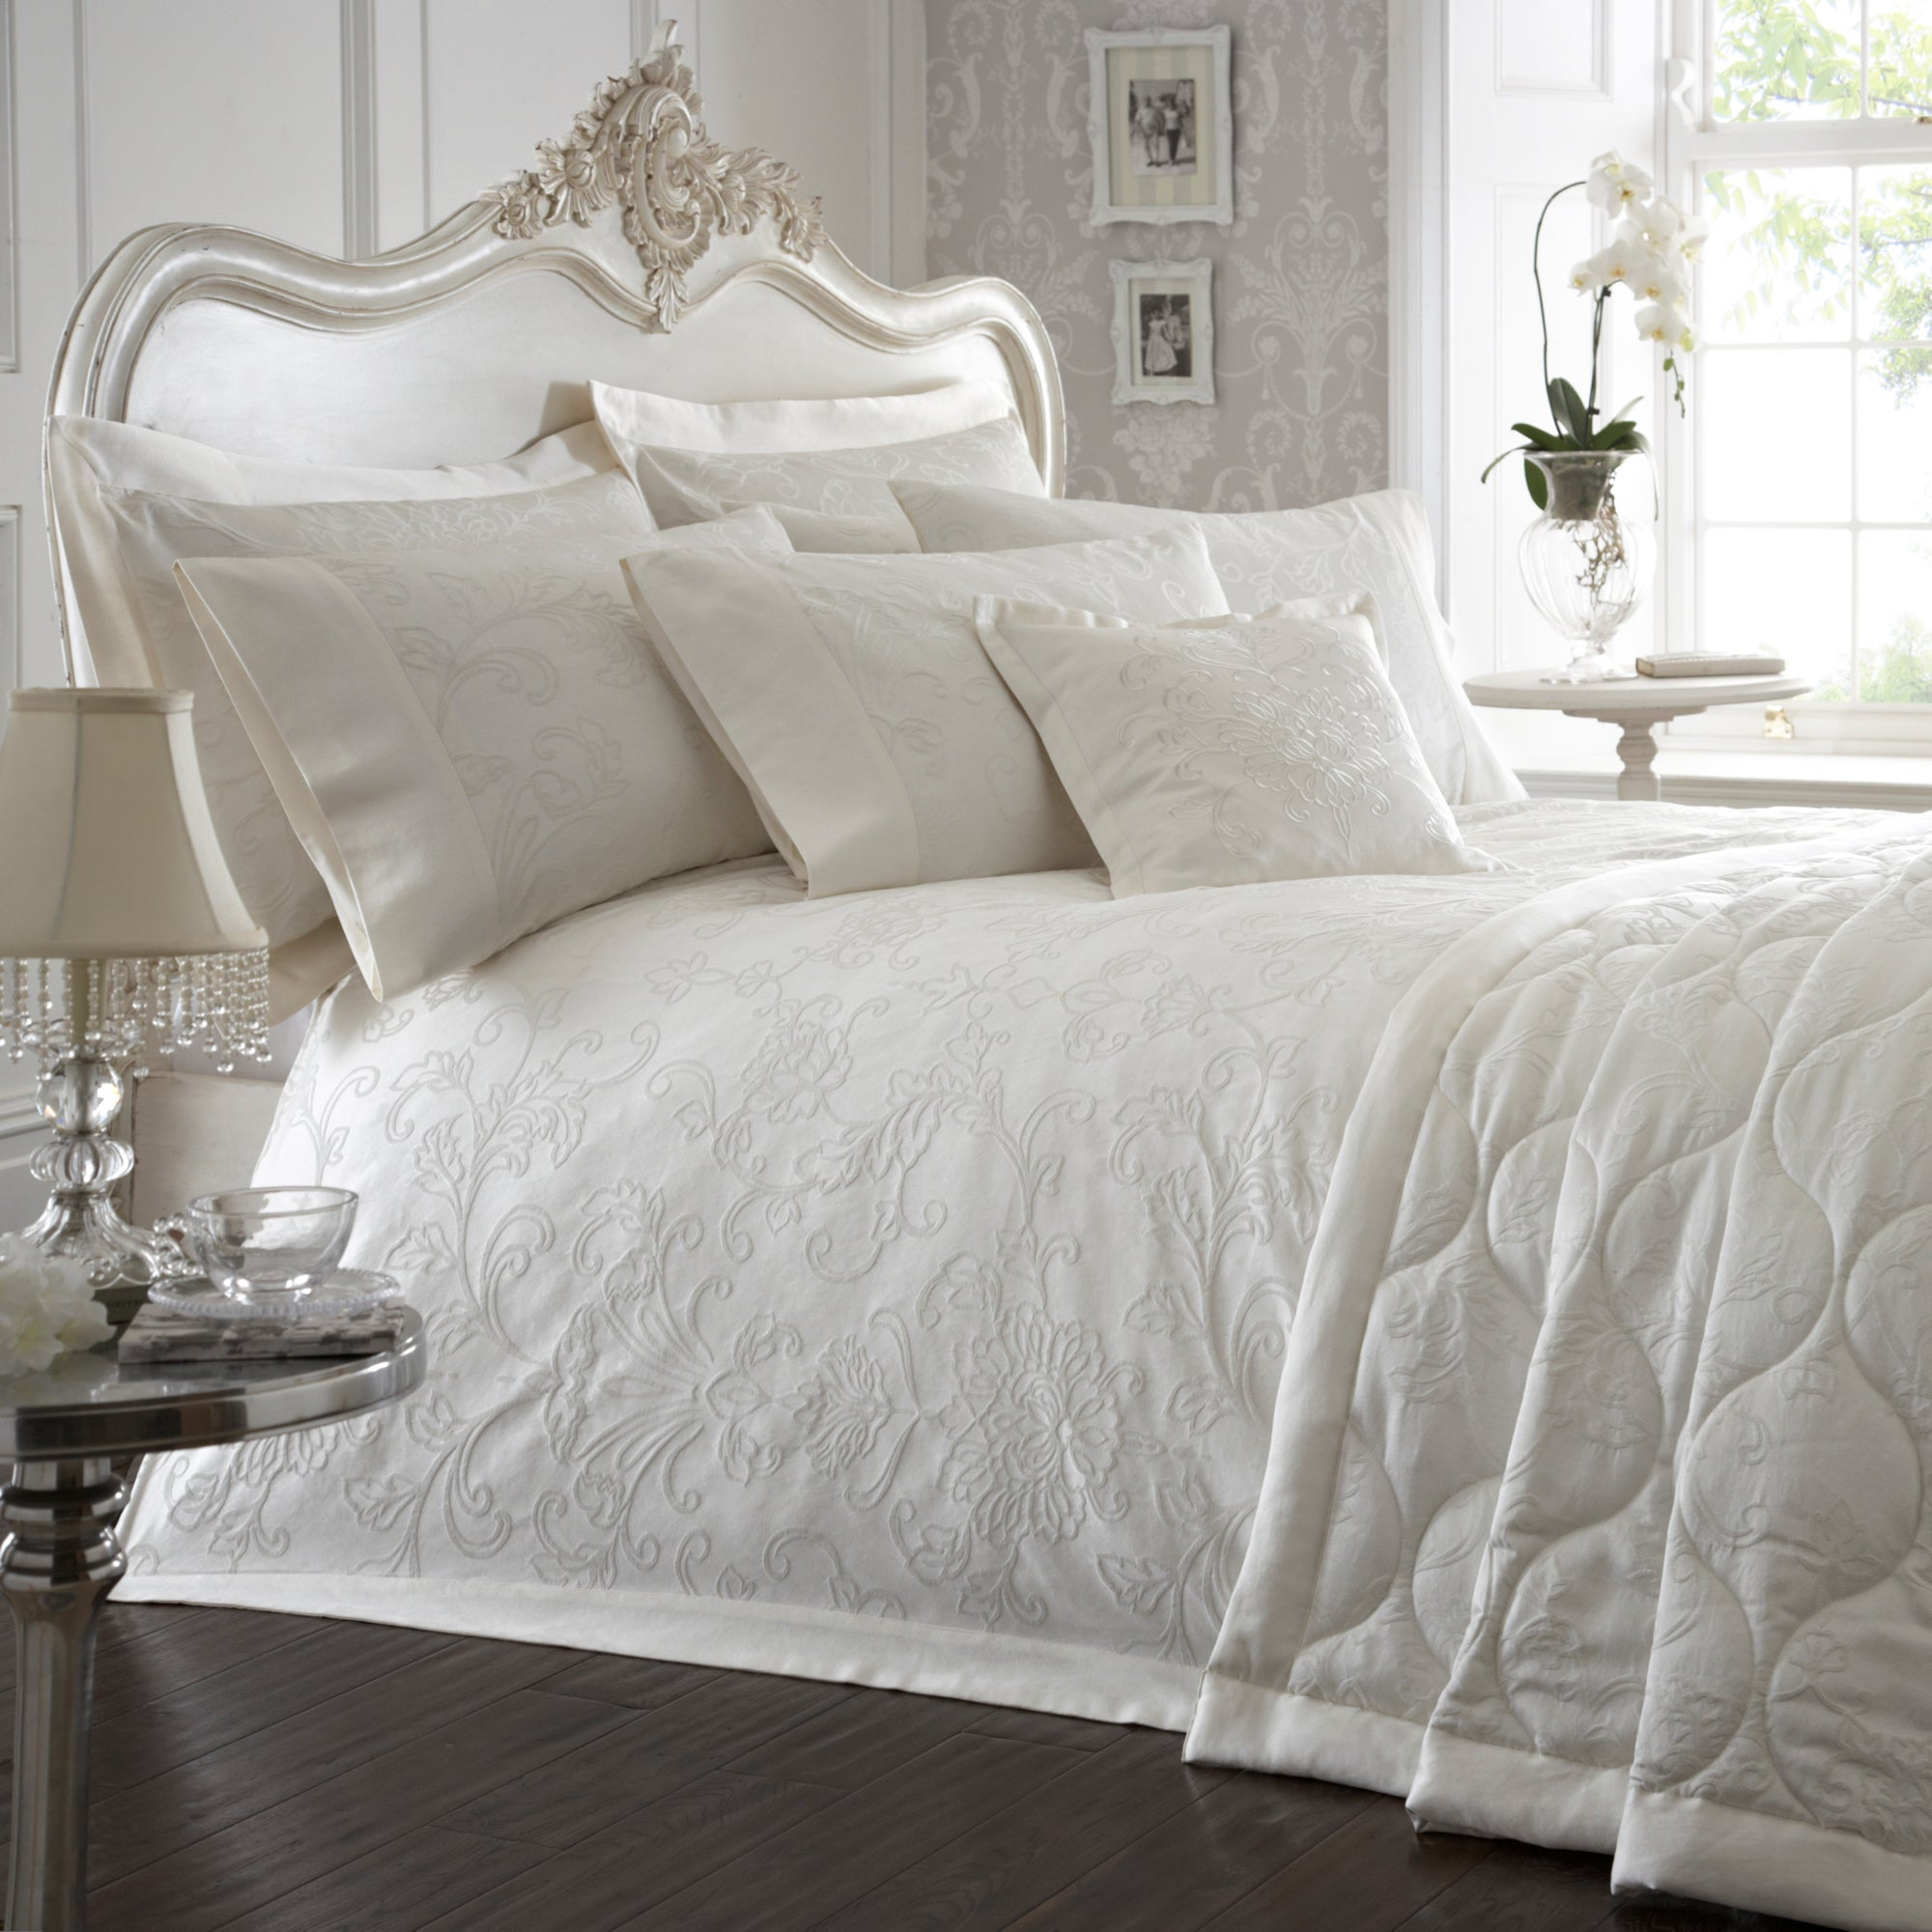 Dorma Cream Pascale Collection Duvet Cover